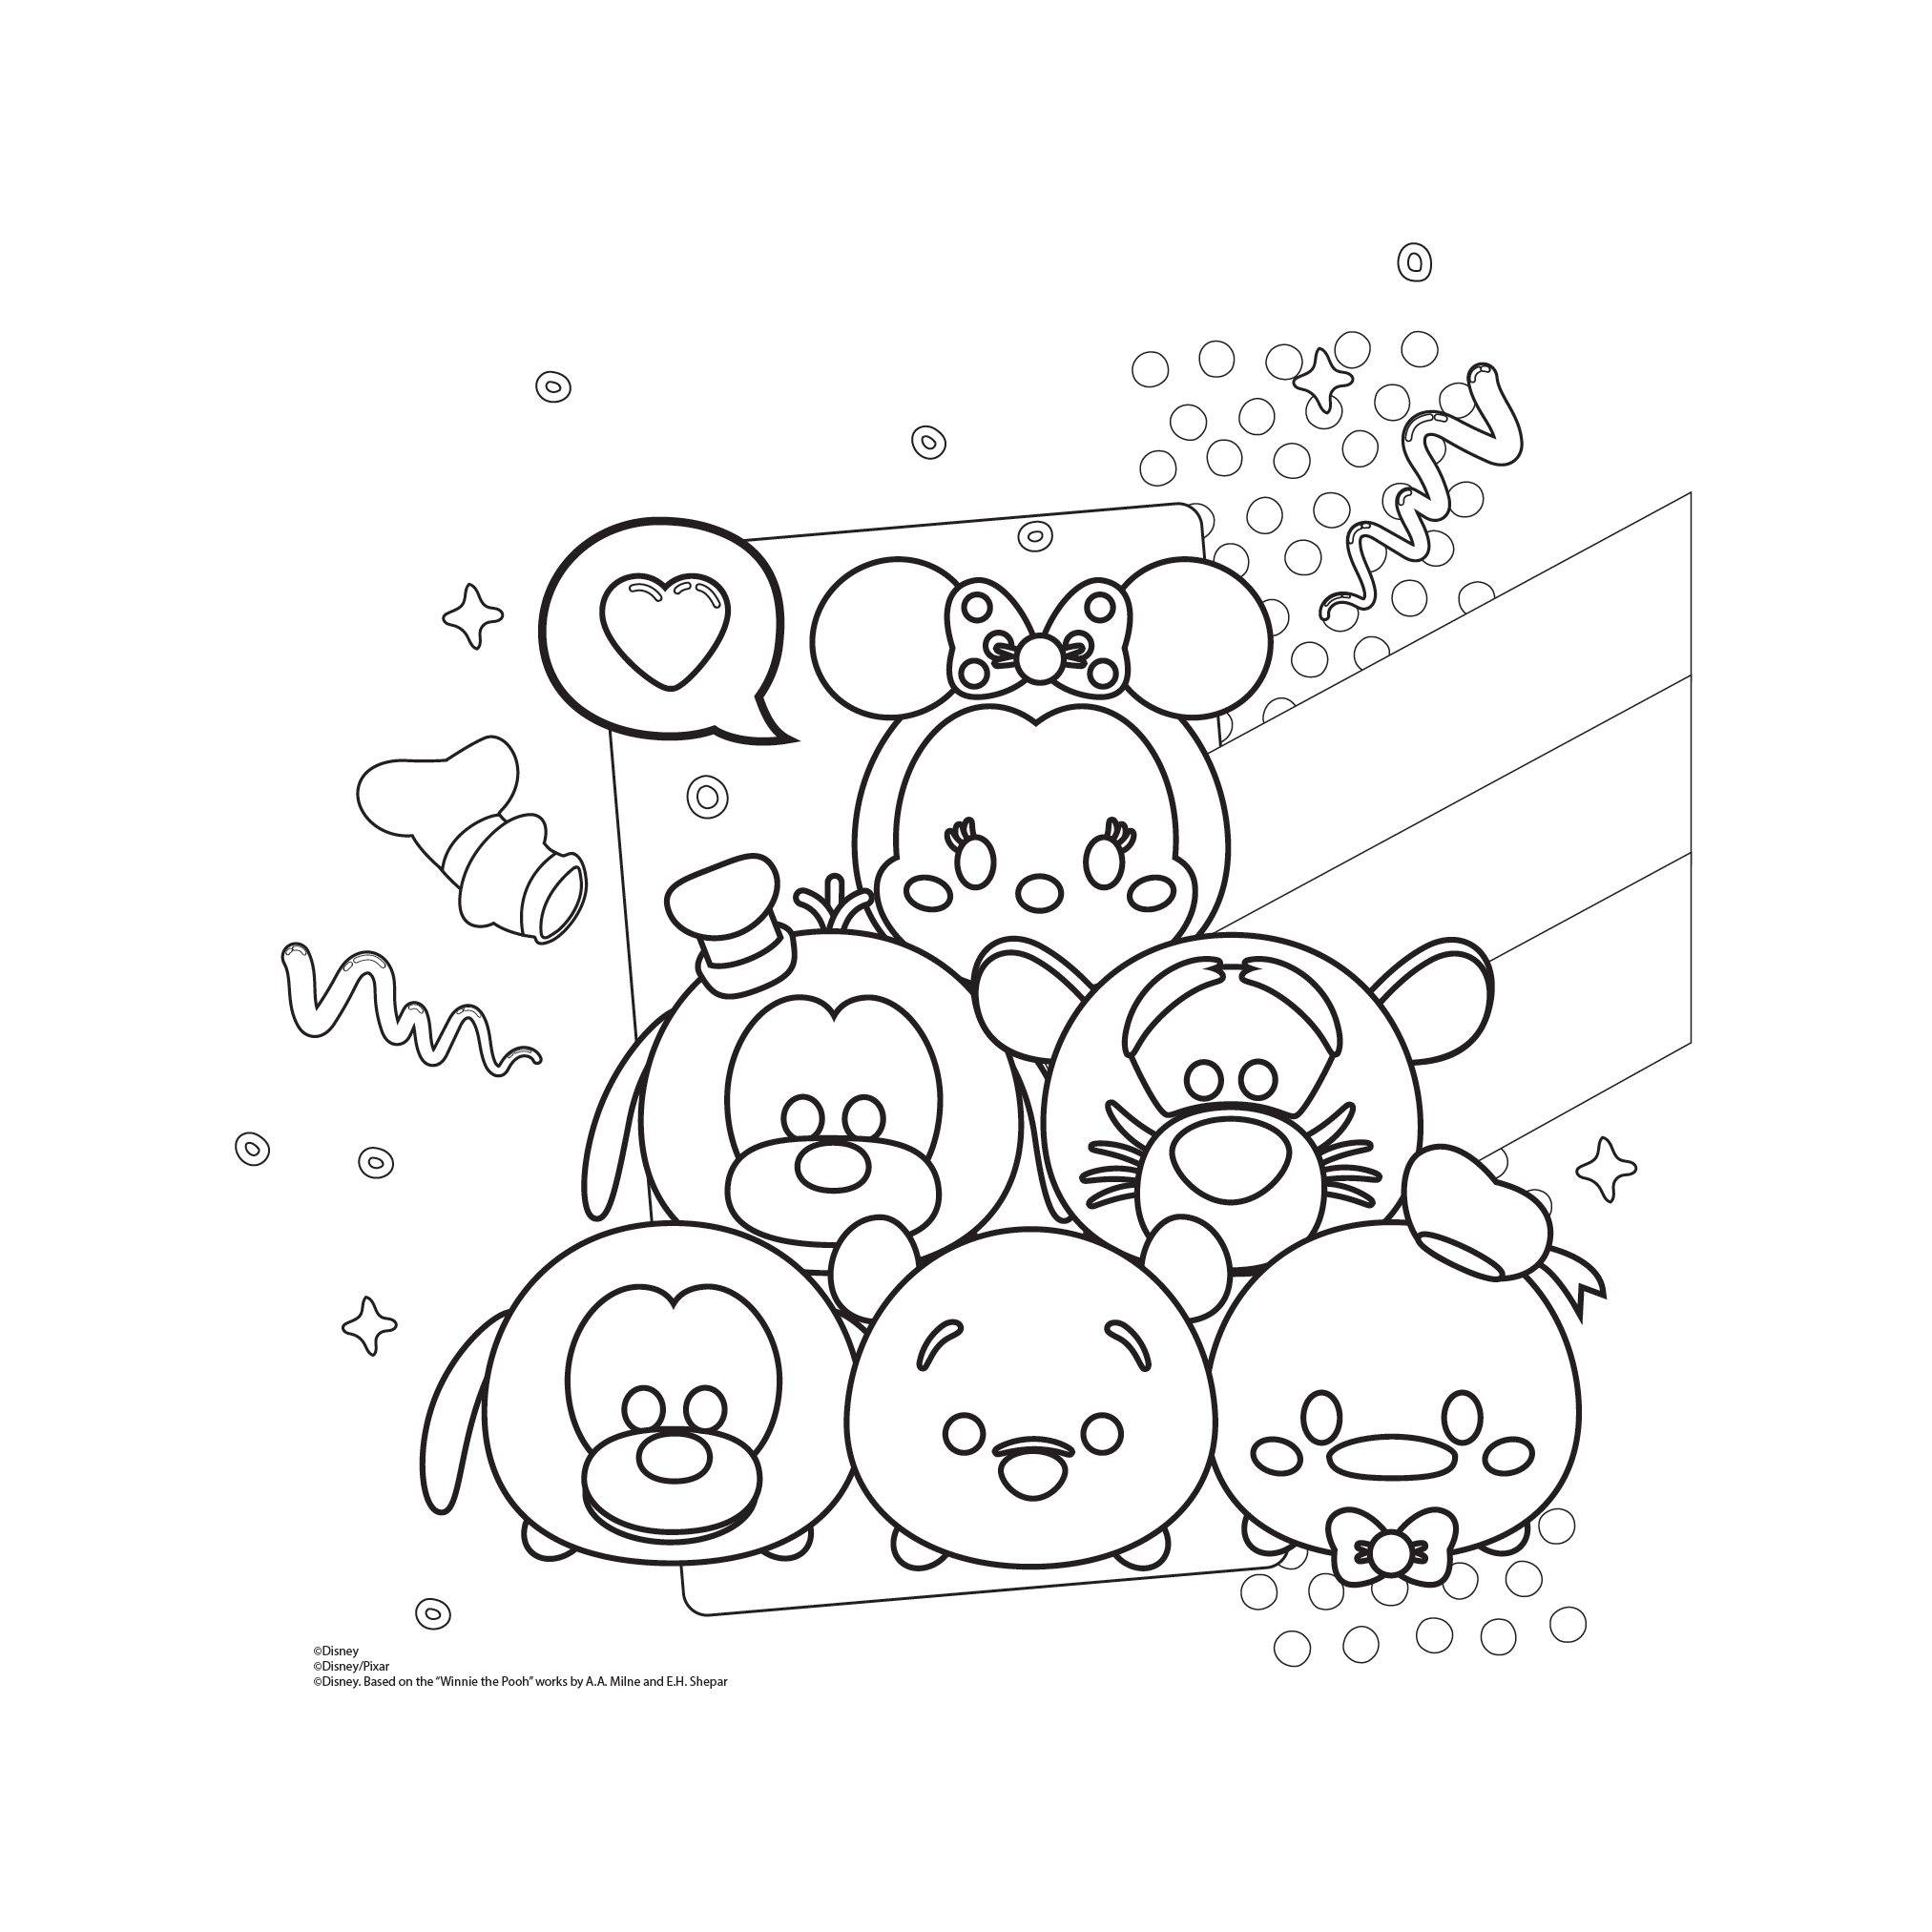 Tsum Tsum Coloring Pages Printable At GetDrawings